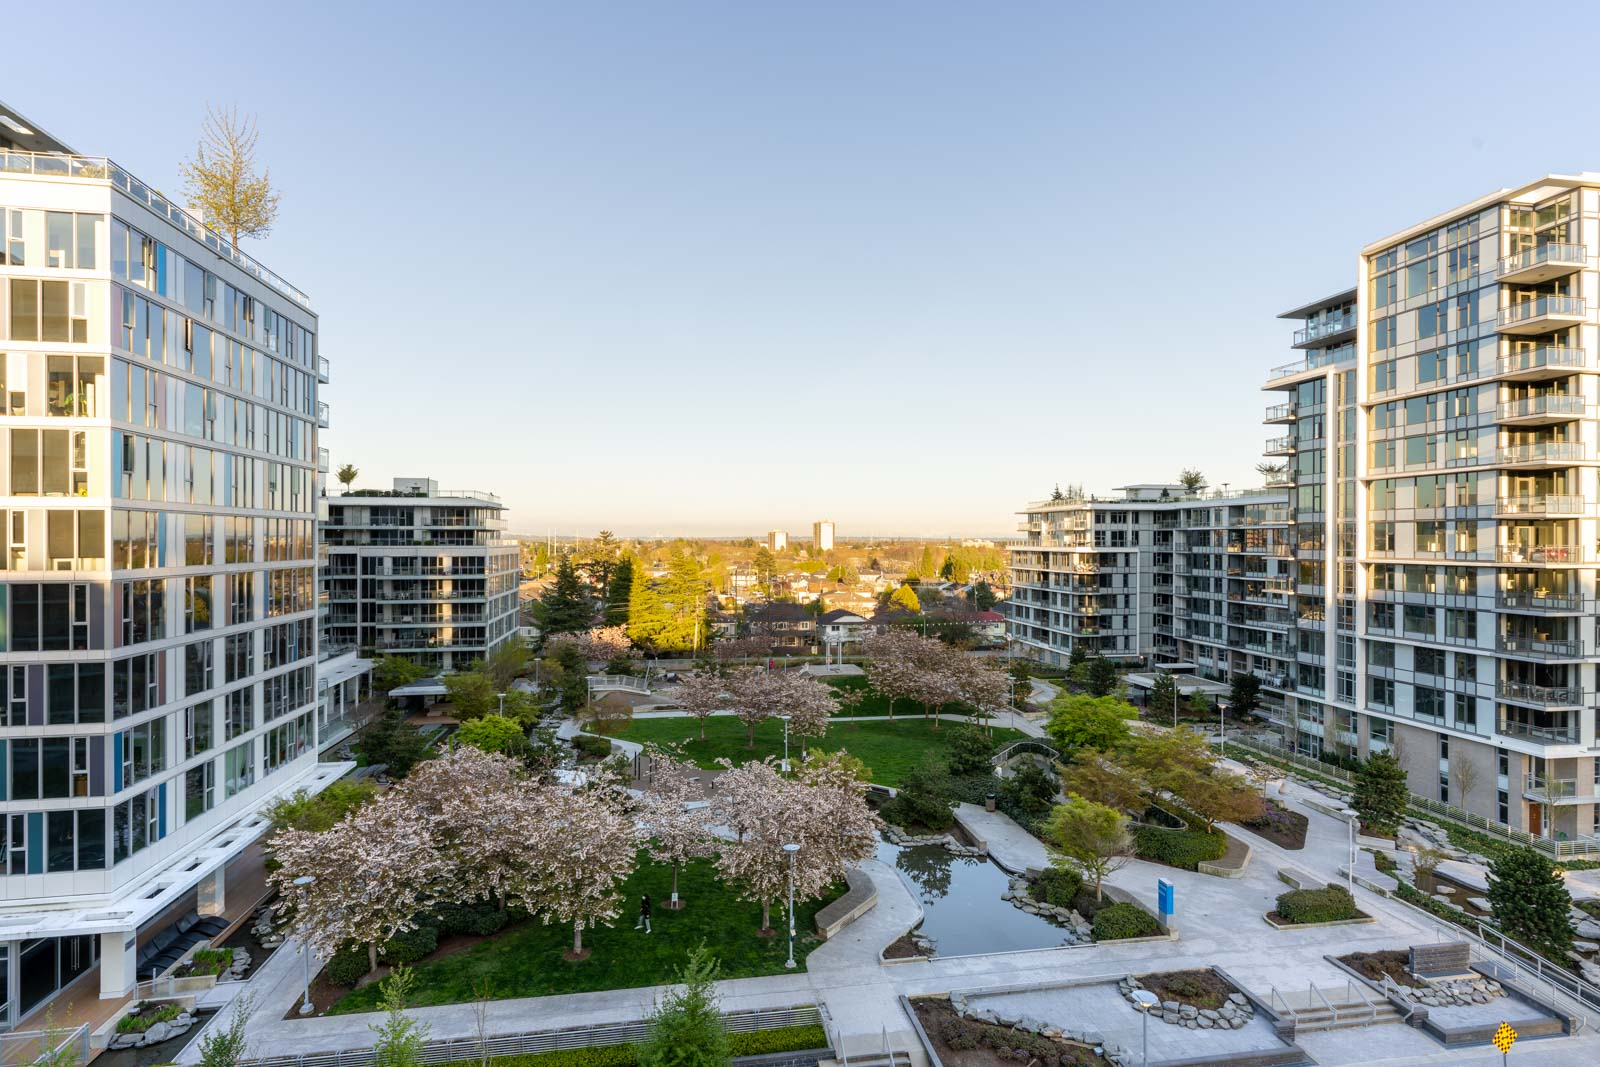 view from balcony at a cherry blossom trees and green grass